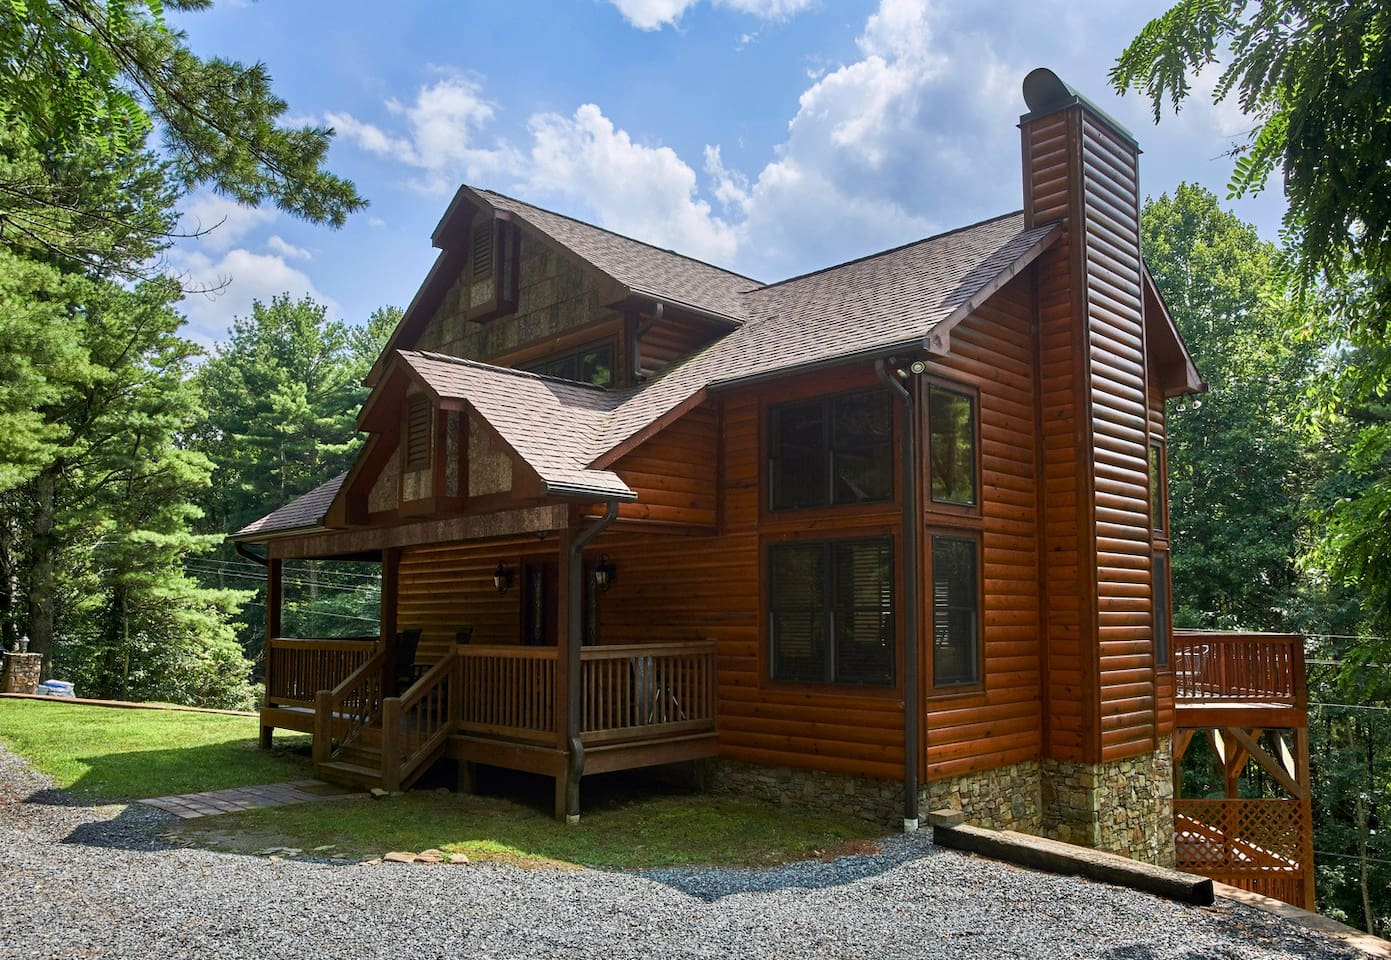 nc carolina tub cabins rooms near in secluded united hot rent for log hiking purlear states north boone cabin